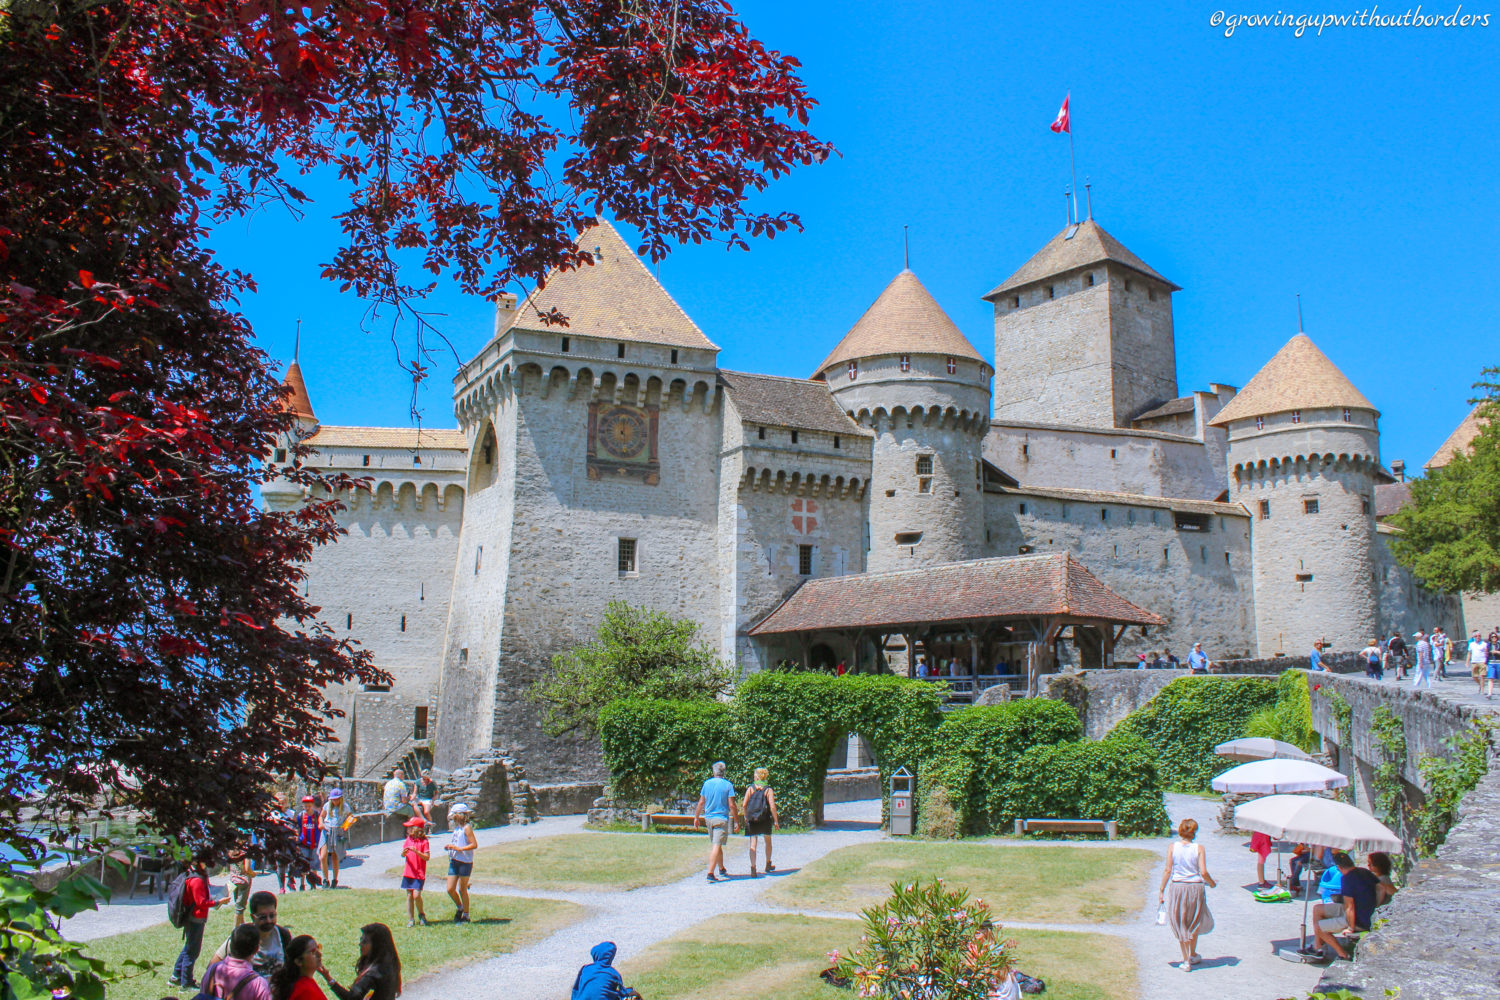 Villeneuve, Chateau de Chillon, Switzerland